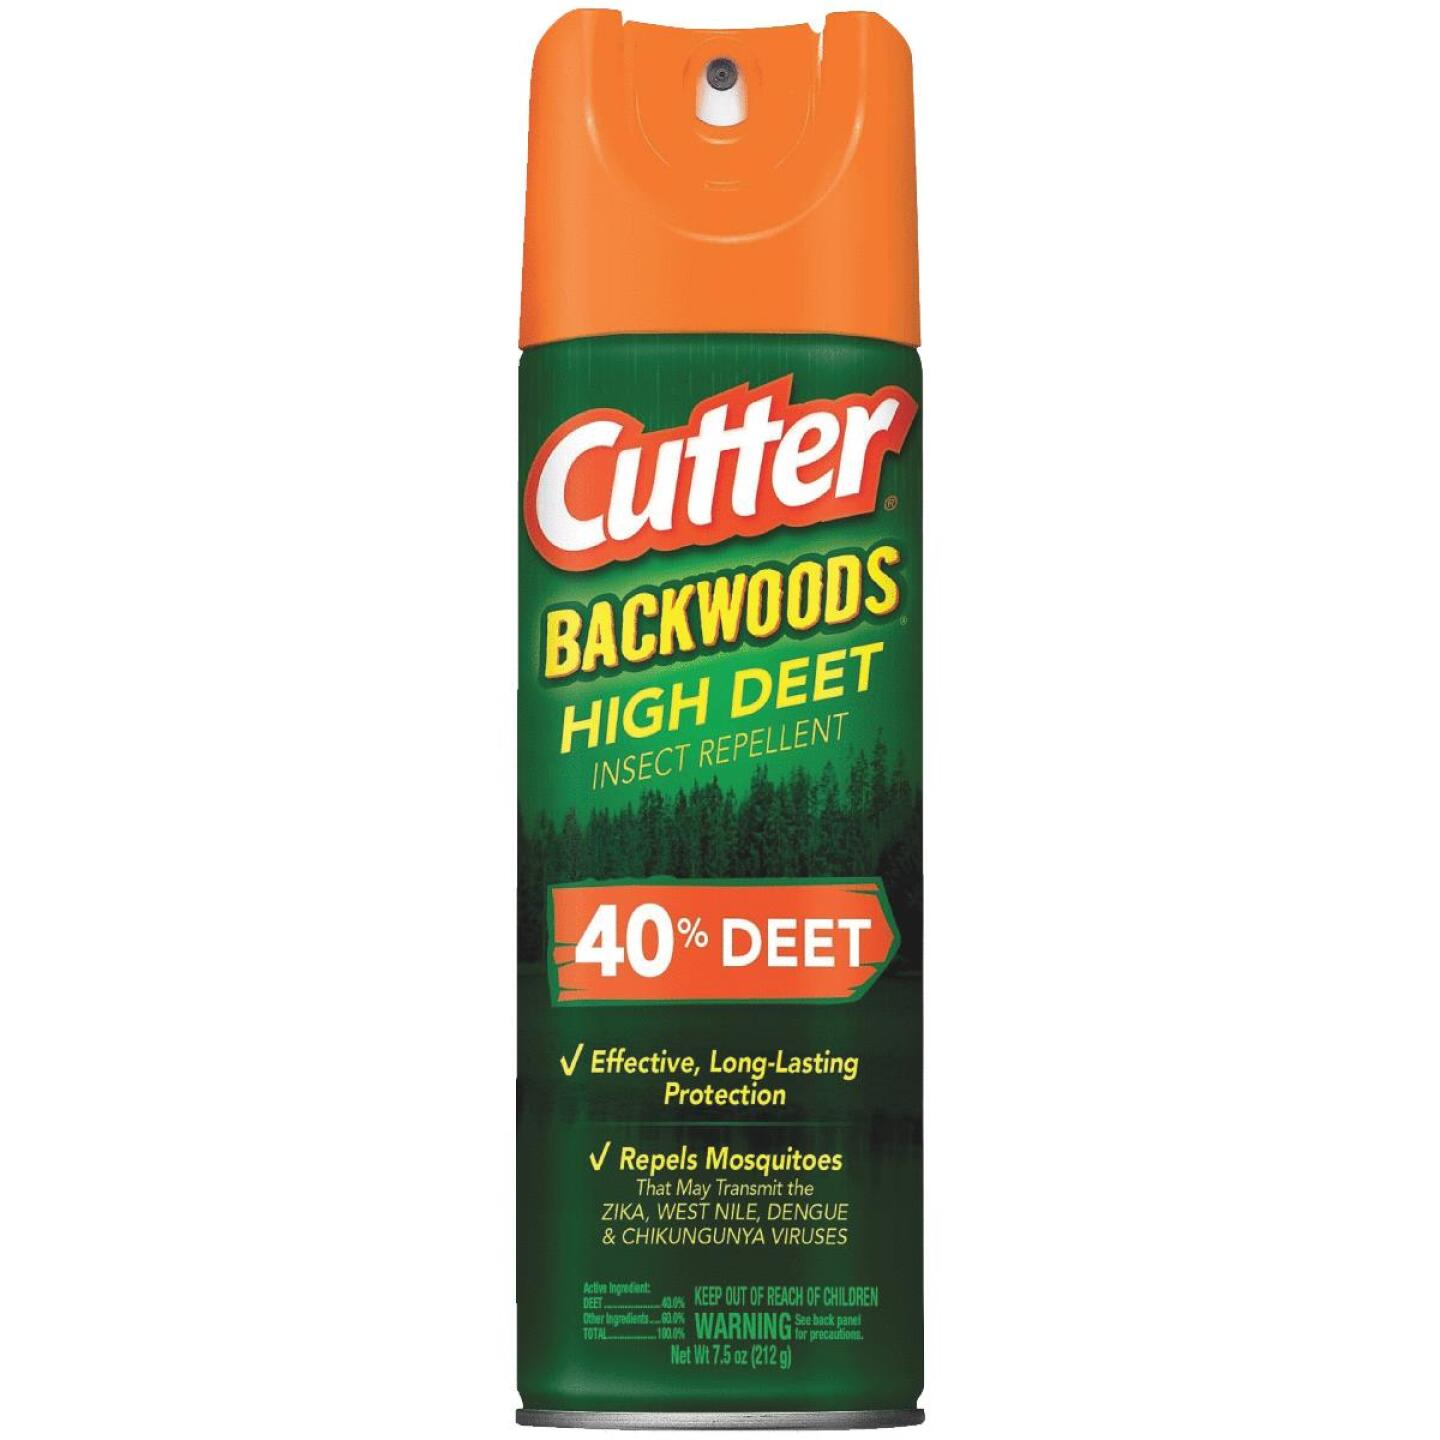 Cutter Backwoods High Deet 7.5 Oz. Insect Repellent Aerosol Spray Image 1